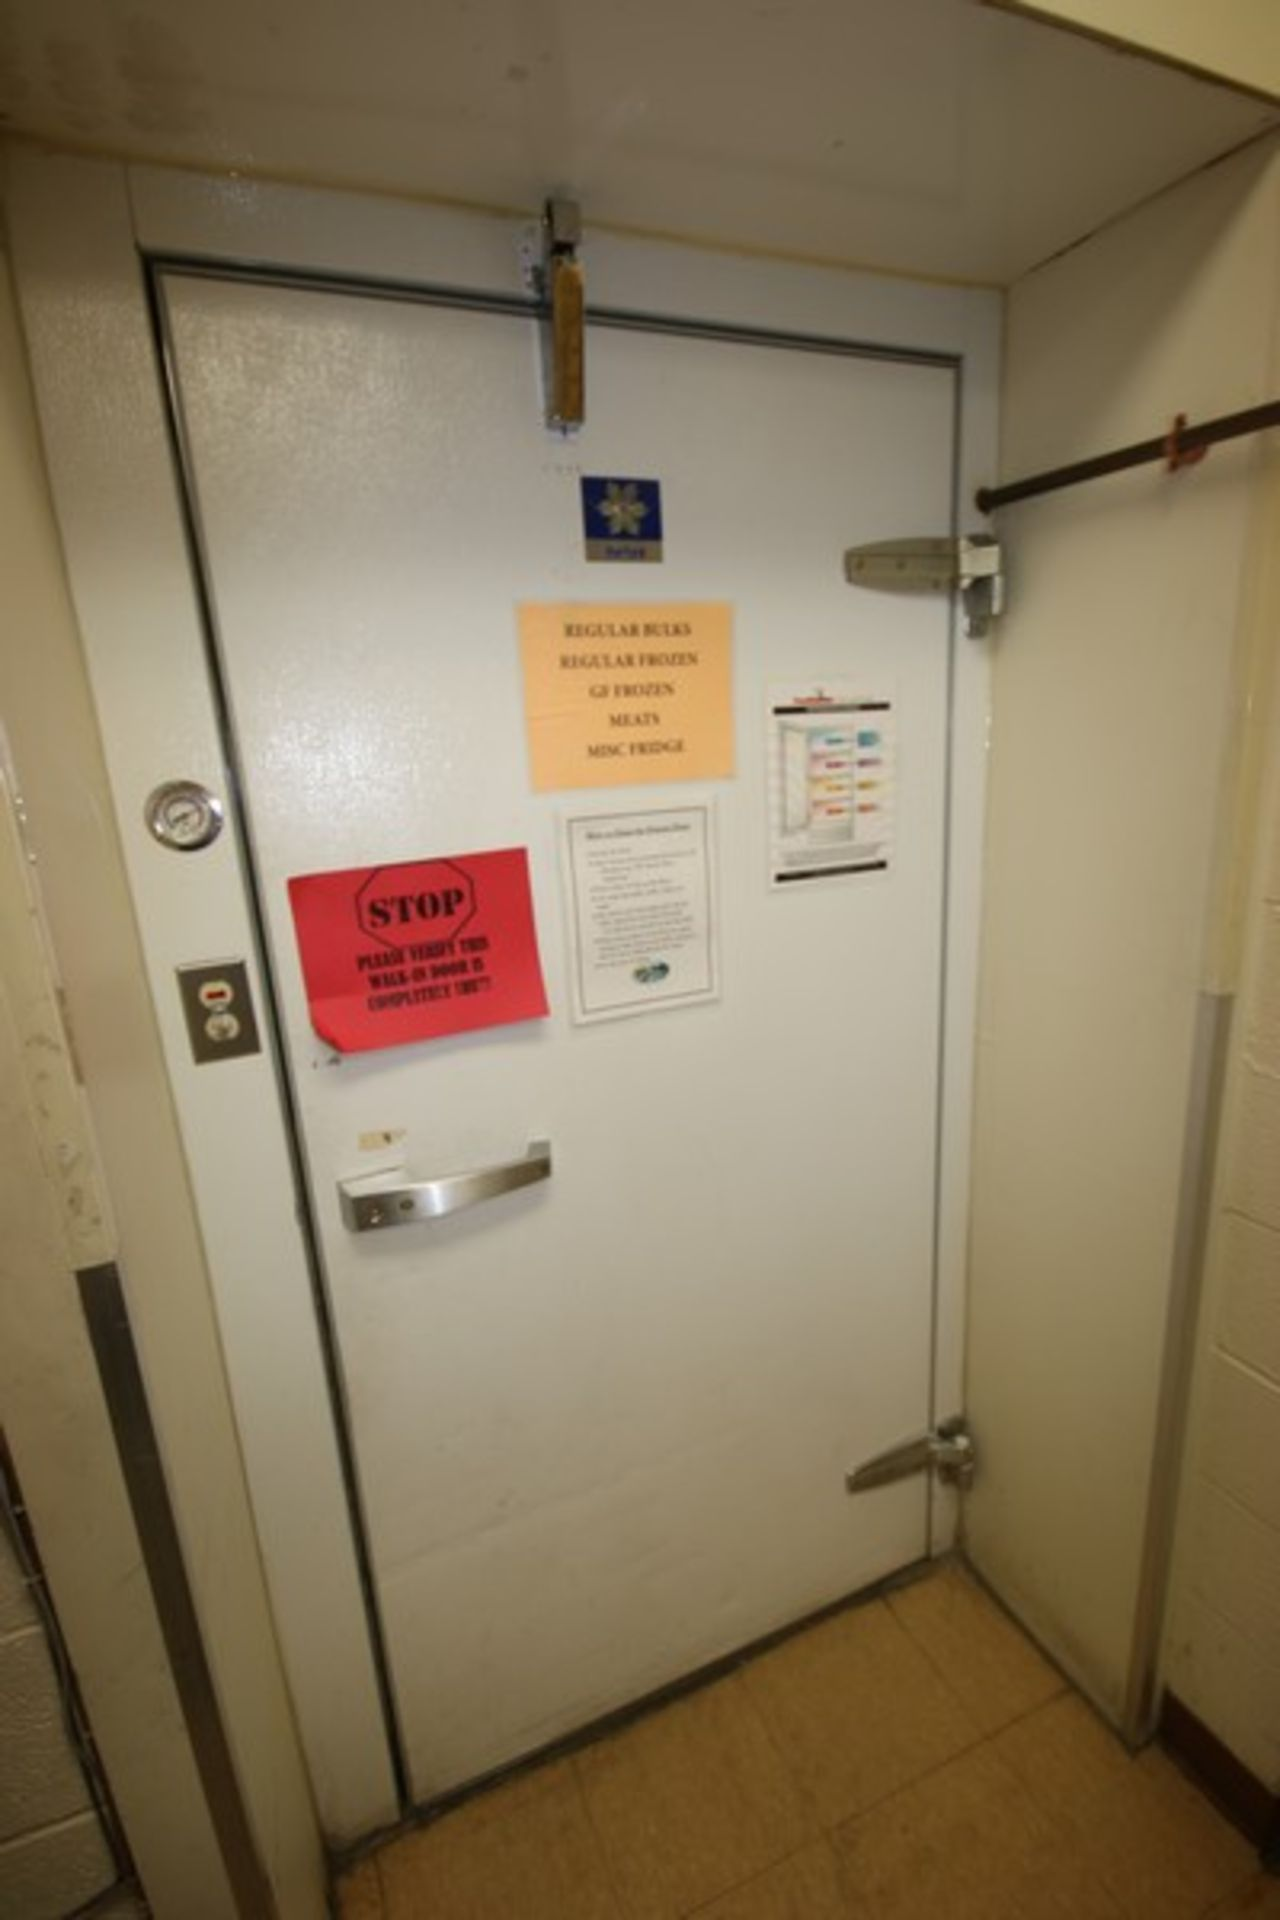 Harford Dual Compartment Walk-In Cooler & Freezer, M/N DR36788W5H8D, S/N XW703D9, Compartment Sizes: - Image 5 of 16